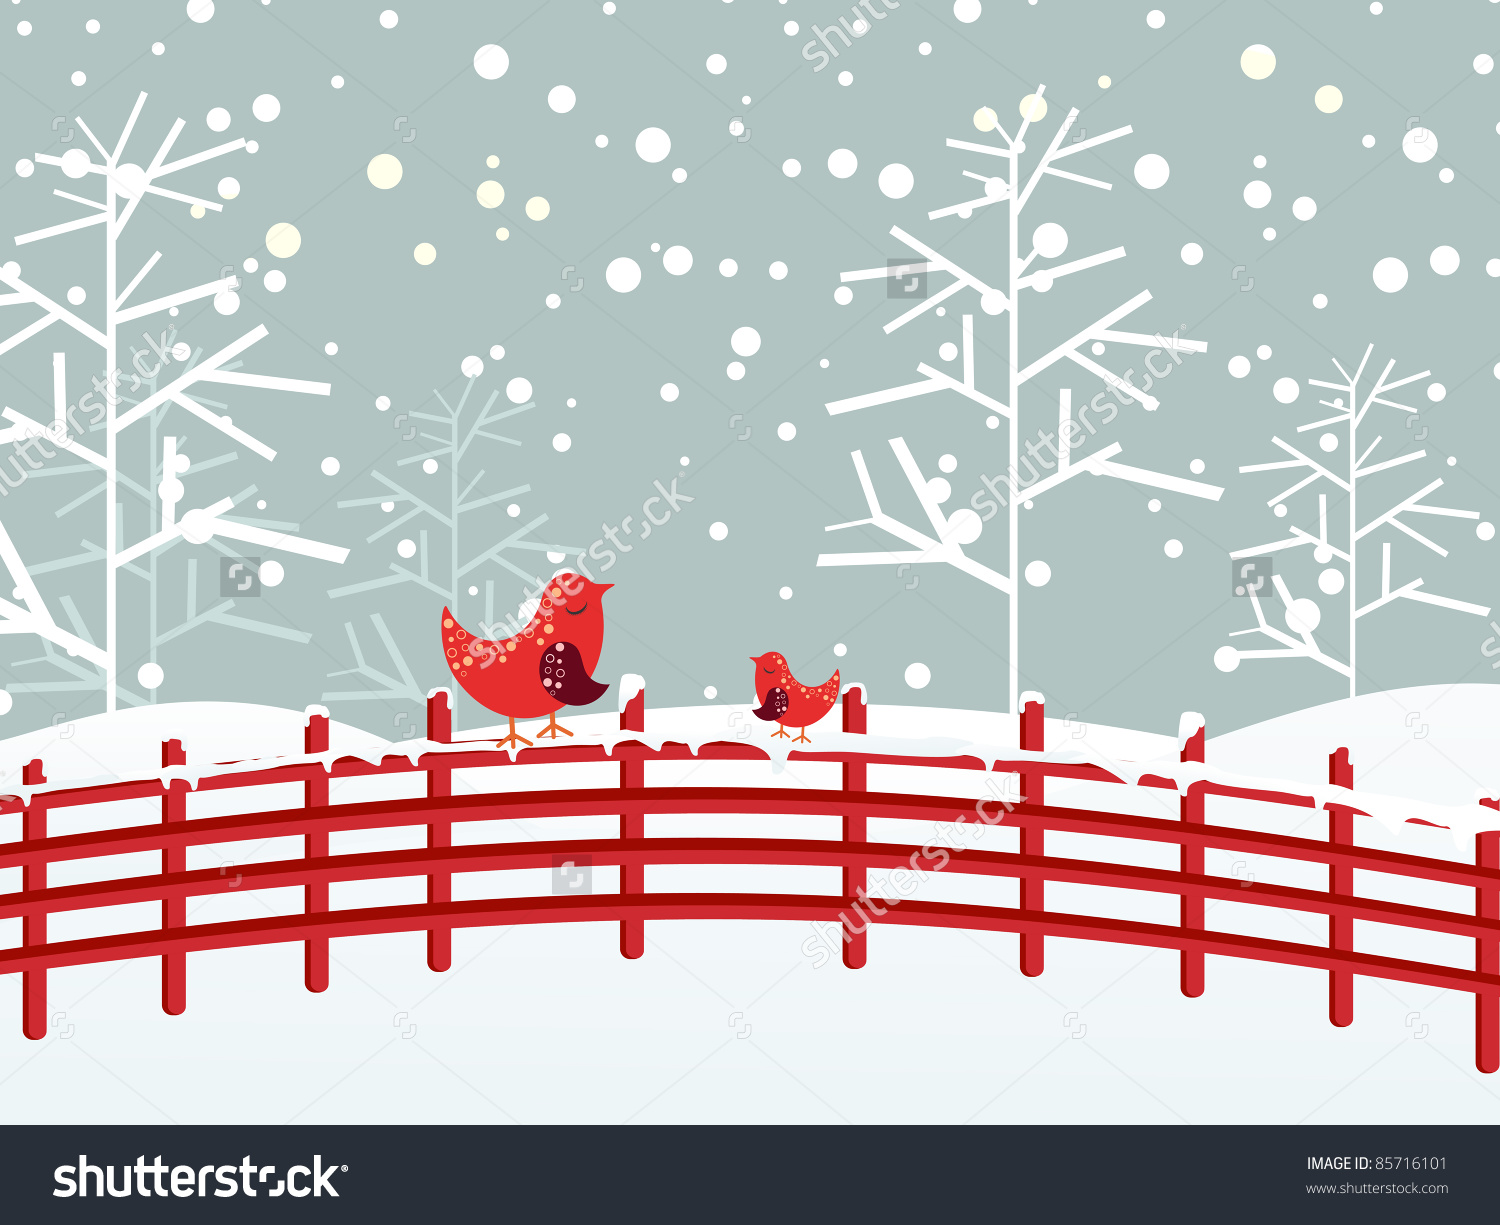 Snow Fall Dry Tree Background Cute Stock Vector 85716101.